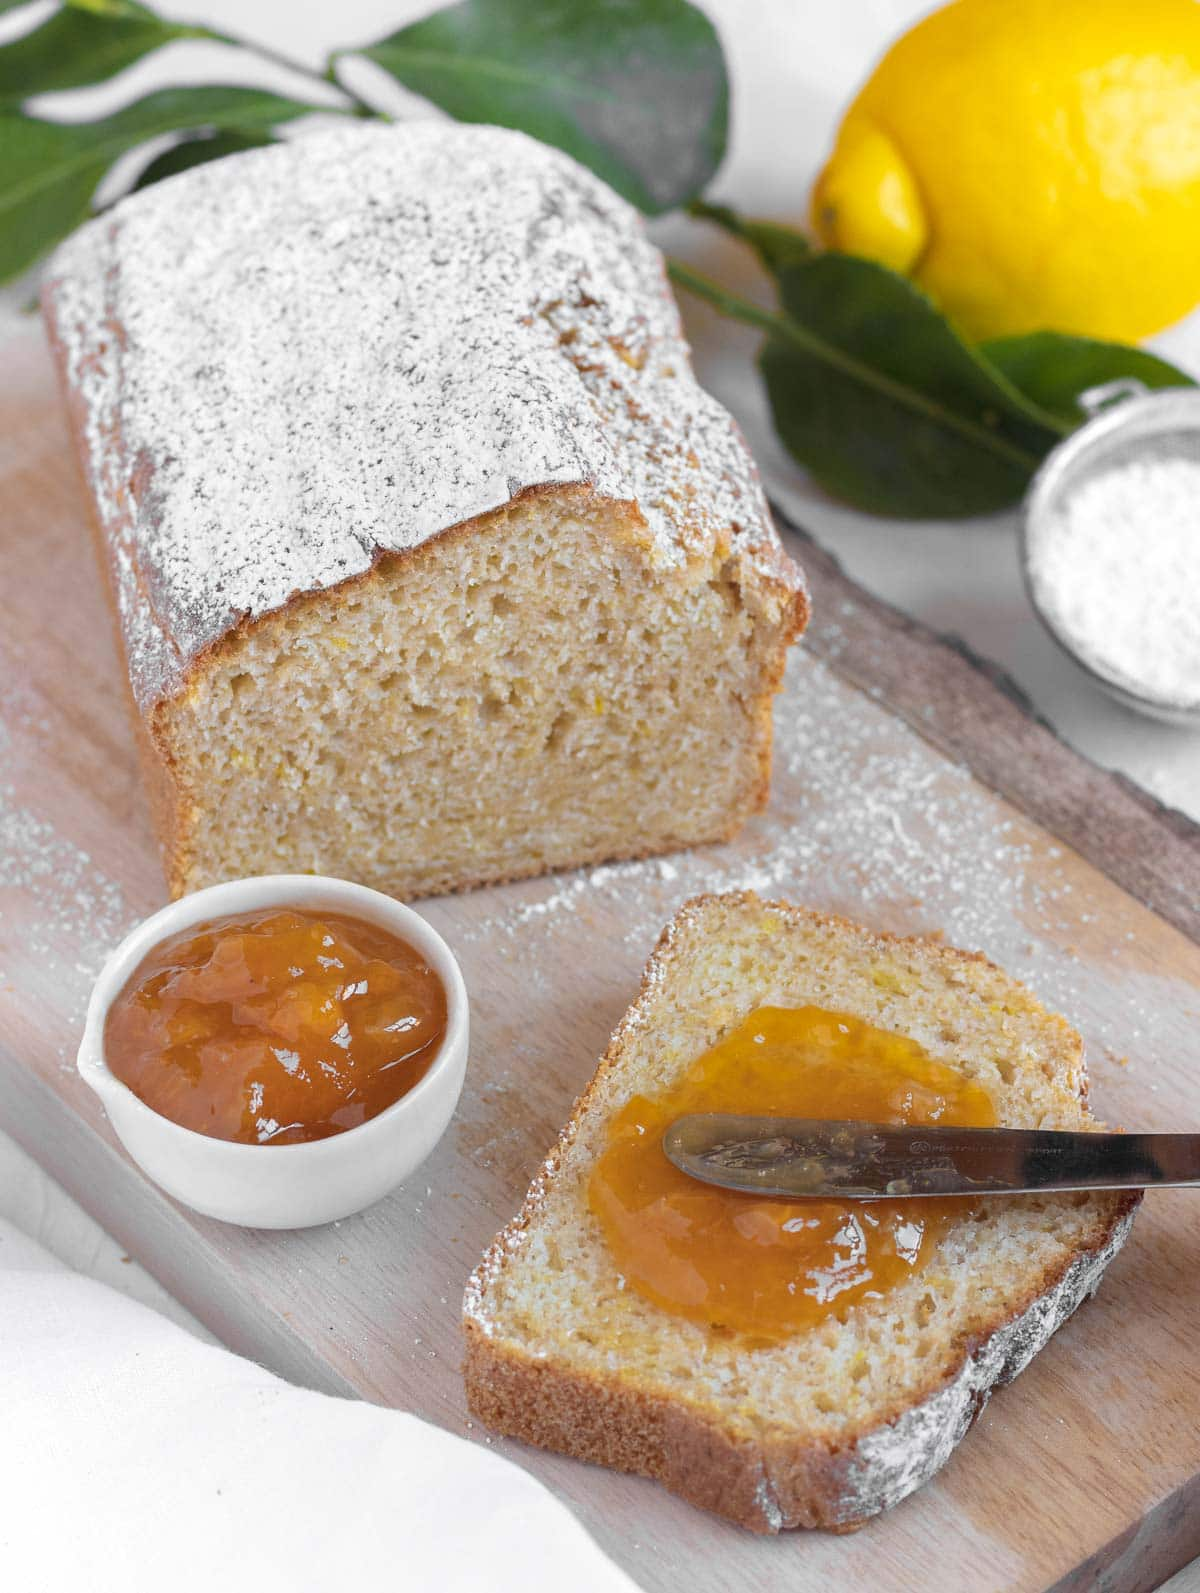 slice of cake with apricot jam